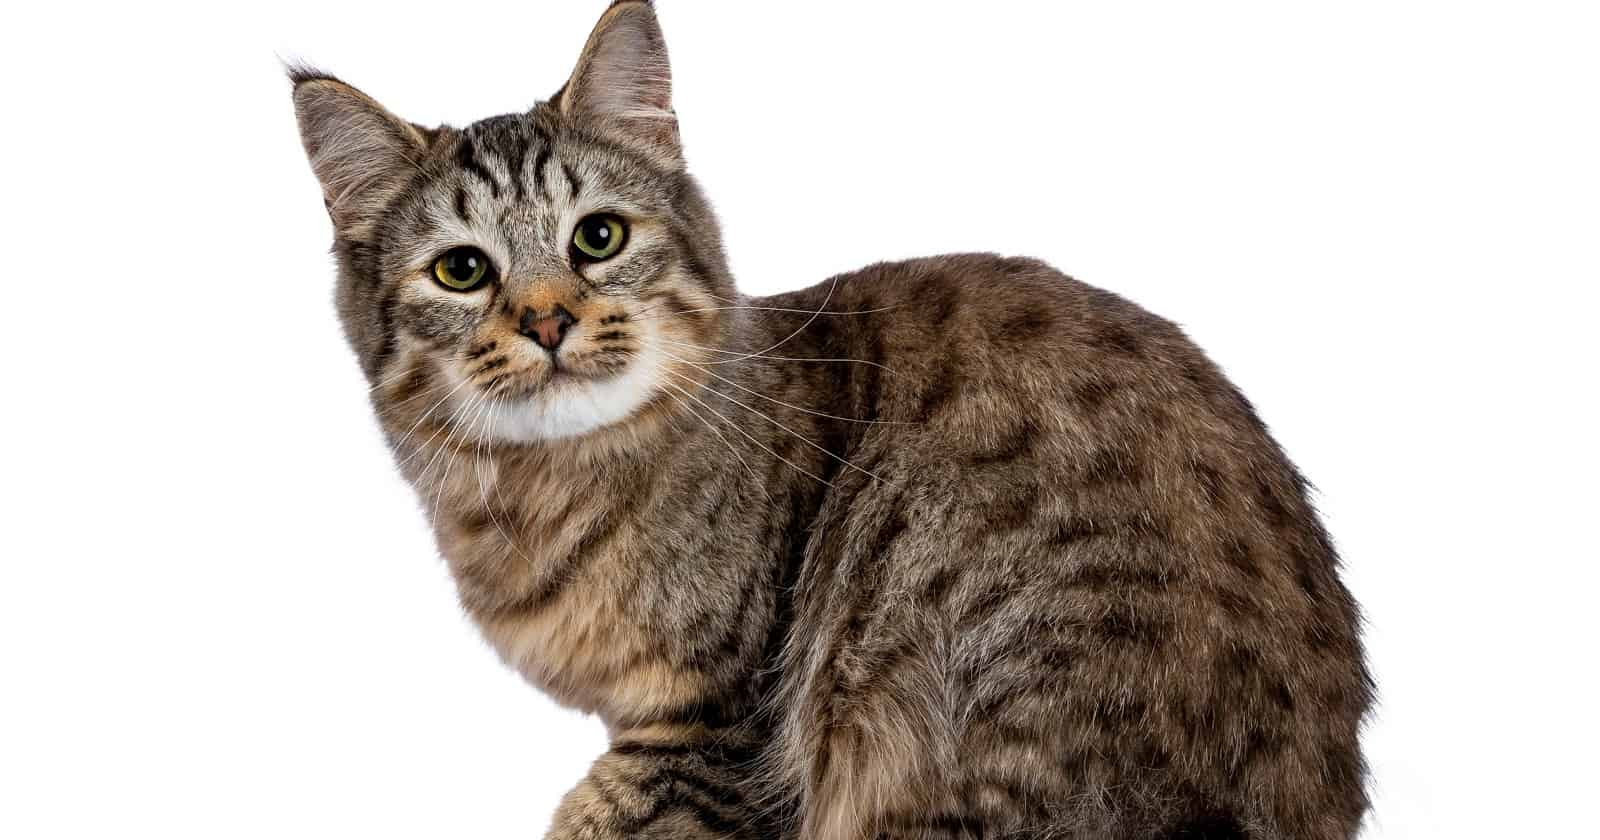 Pixie-bobs are among the dangerous cat breeds